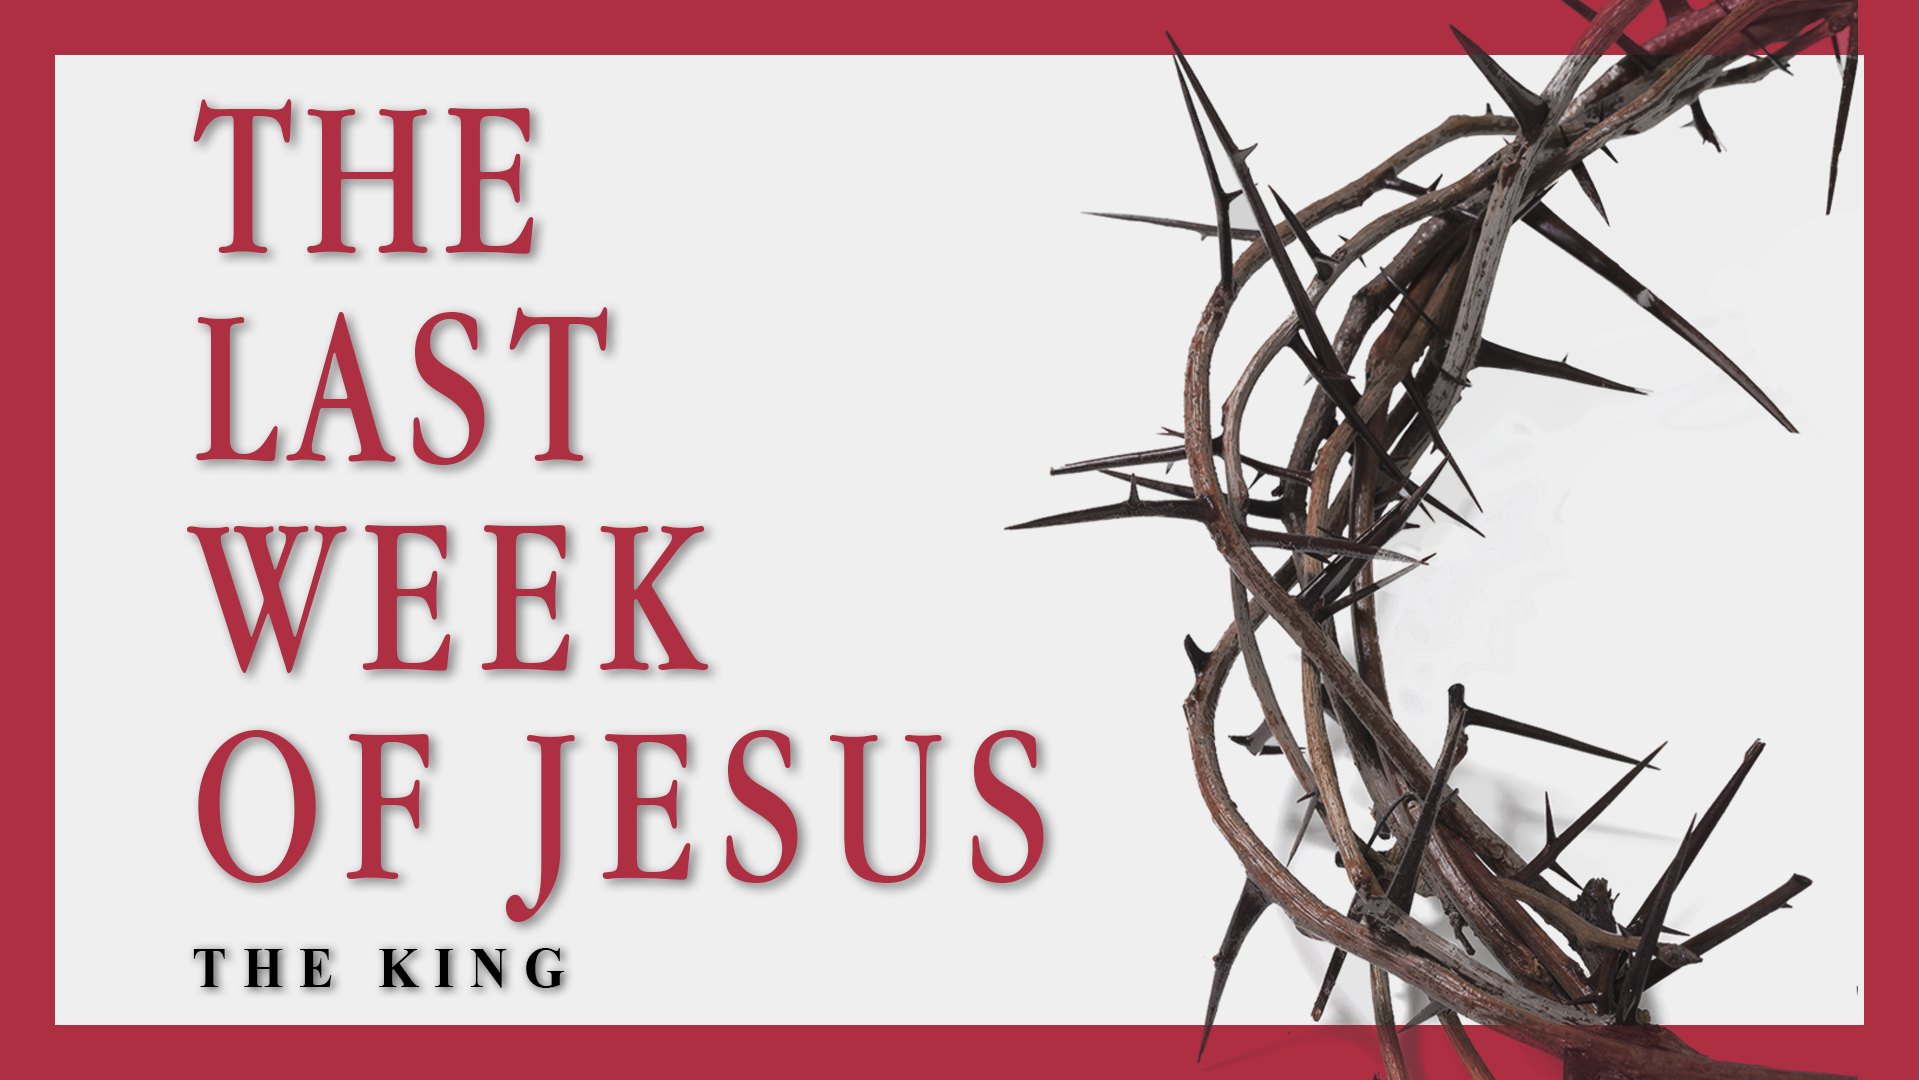 We will prepare to celebrate Easter by taking a closer look at the days of Christ's life just before his crucifixion and resurrection. We will explore and learn how Jesus' teachings and actions in those last moments can motivate our passion for living in our Savior's footsteps.